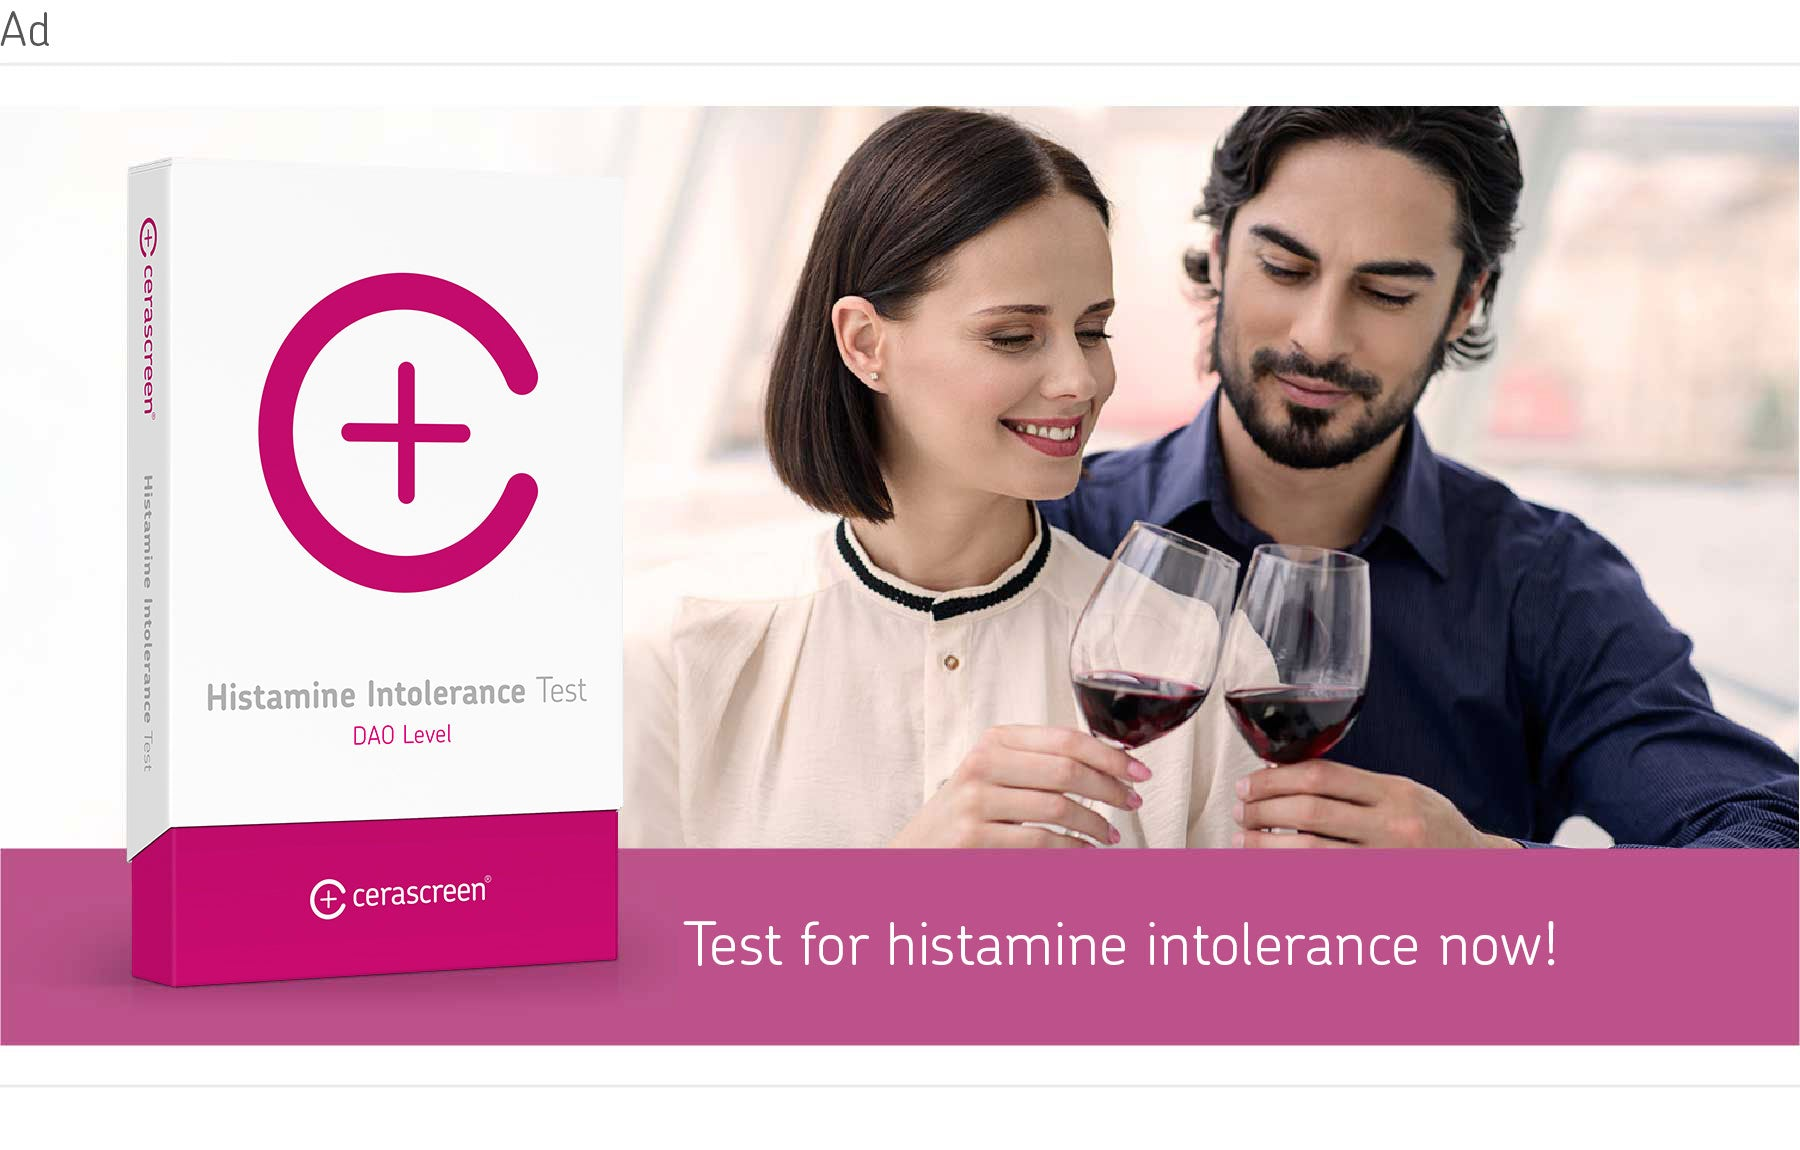 Test your histamine reaction with histamine intolerance test